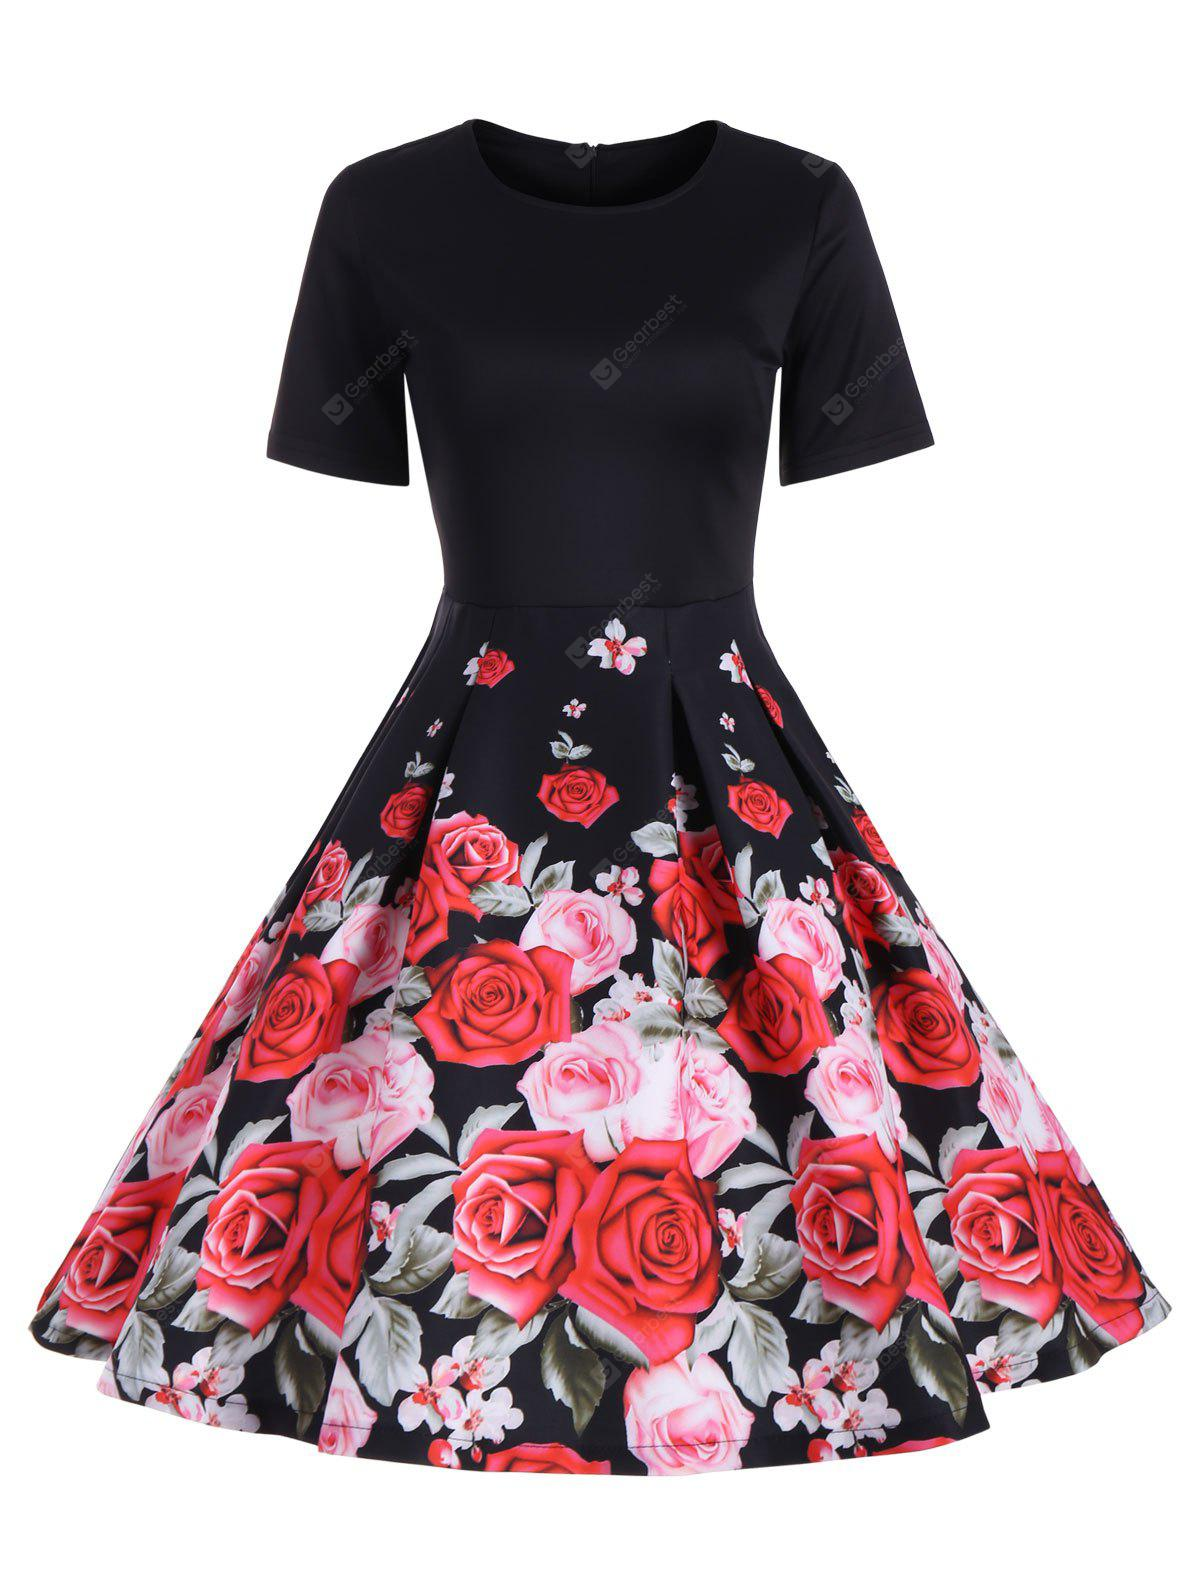 Floral A Line Short Sleeve Vintage Dress